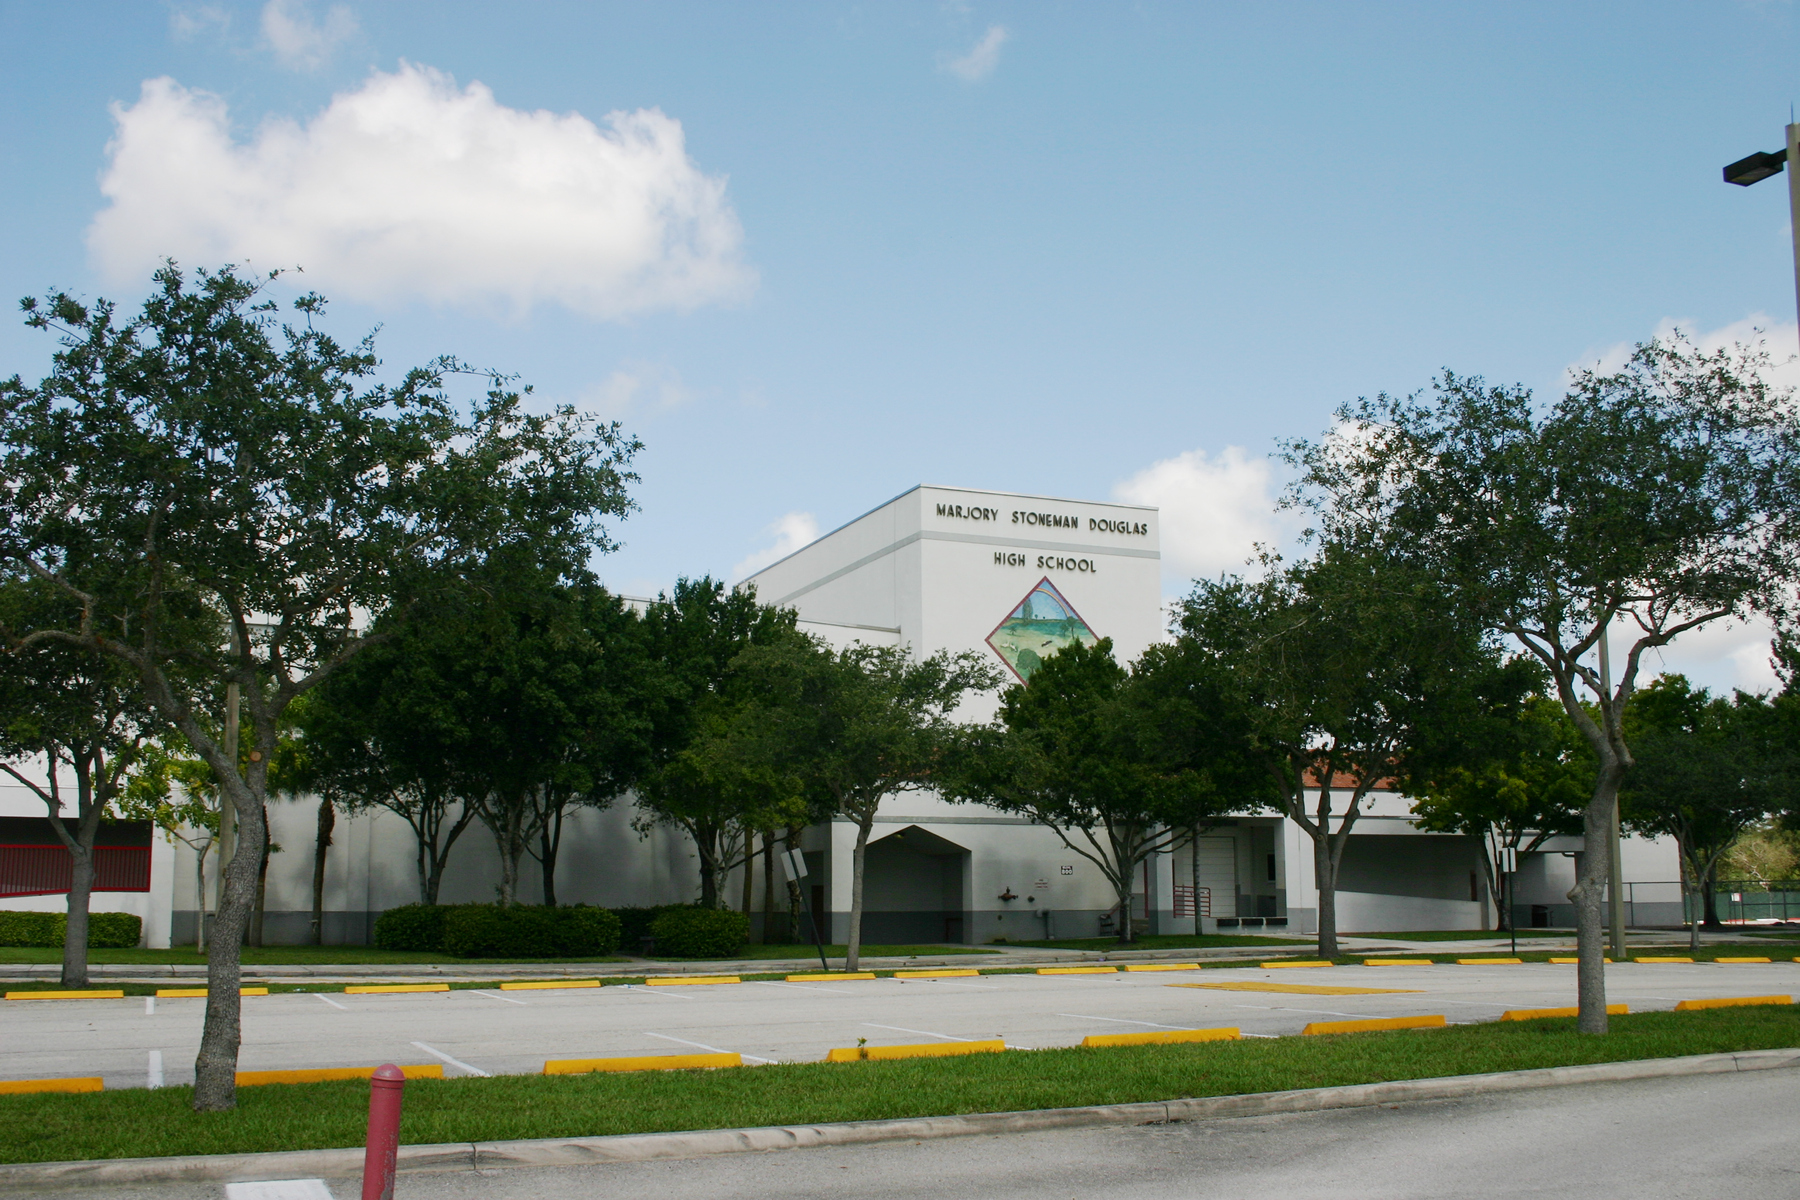 Marjory Stoneman Douglas High School, located in Parkland, Florida.